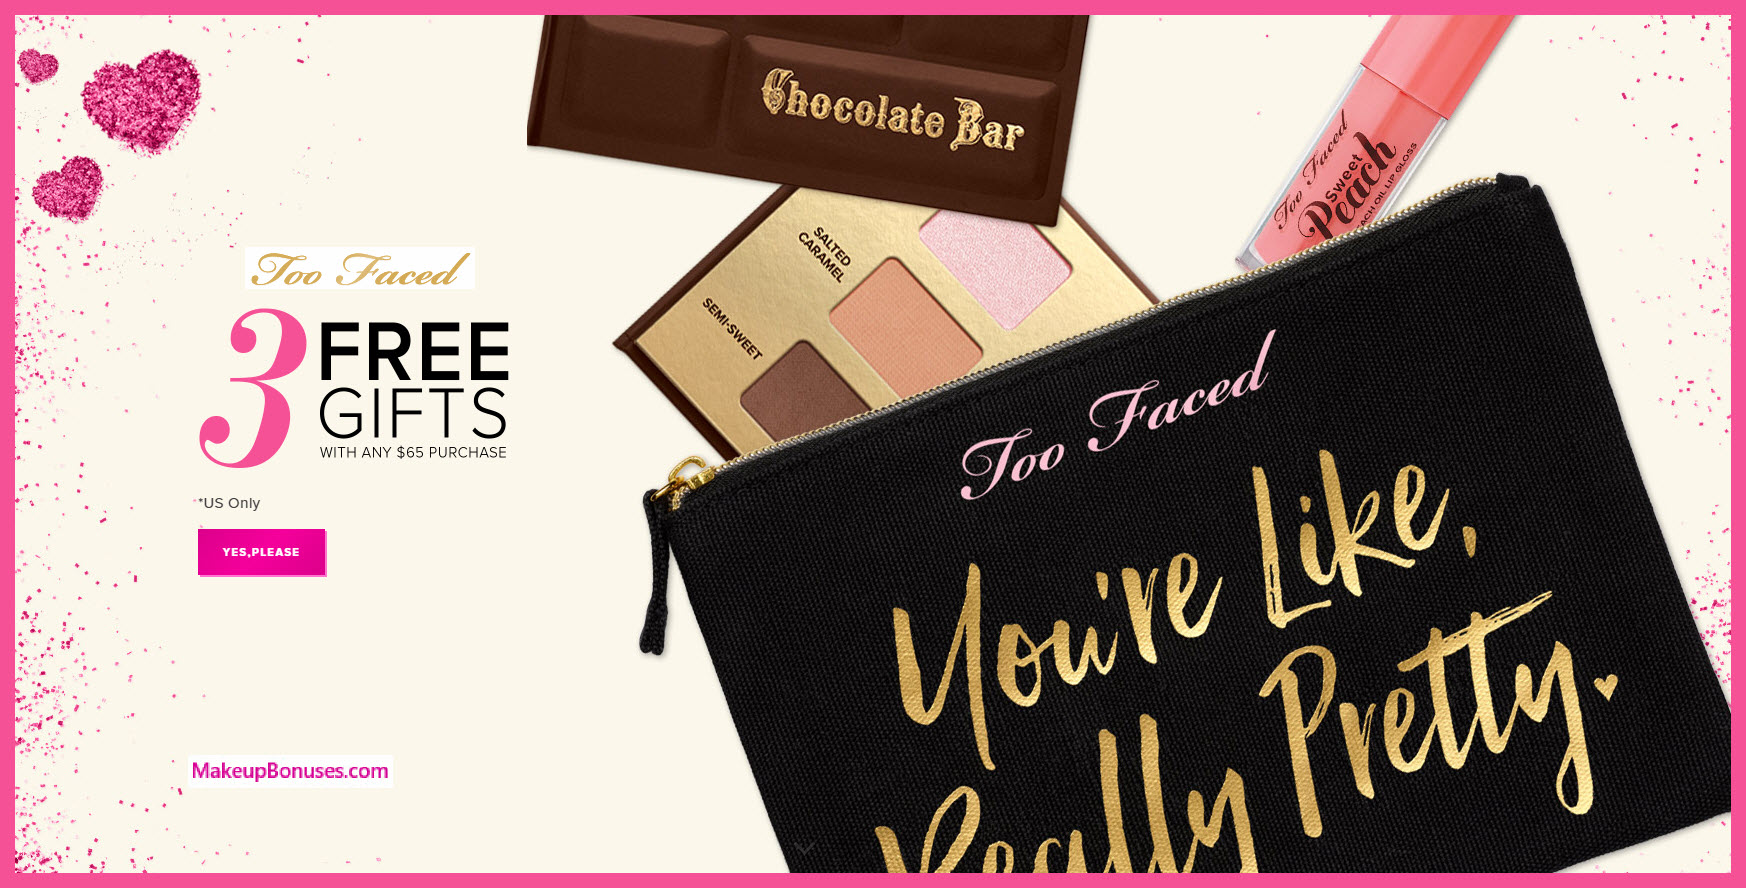 Receive a free 3-pc gift with your $65 Too Faced purchase